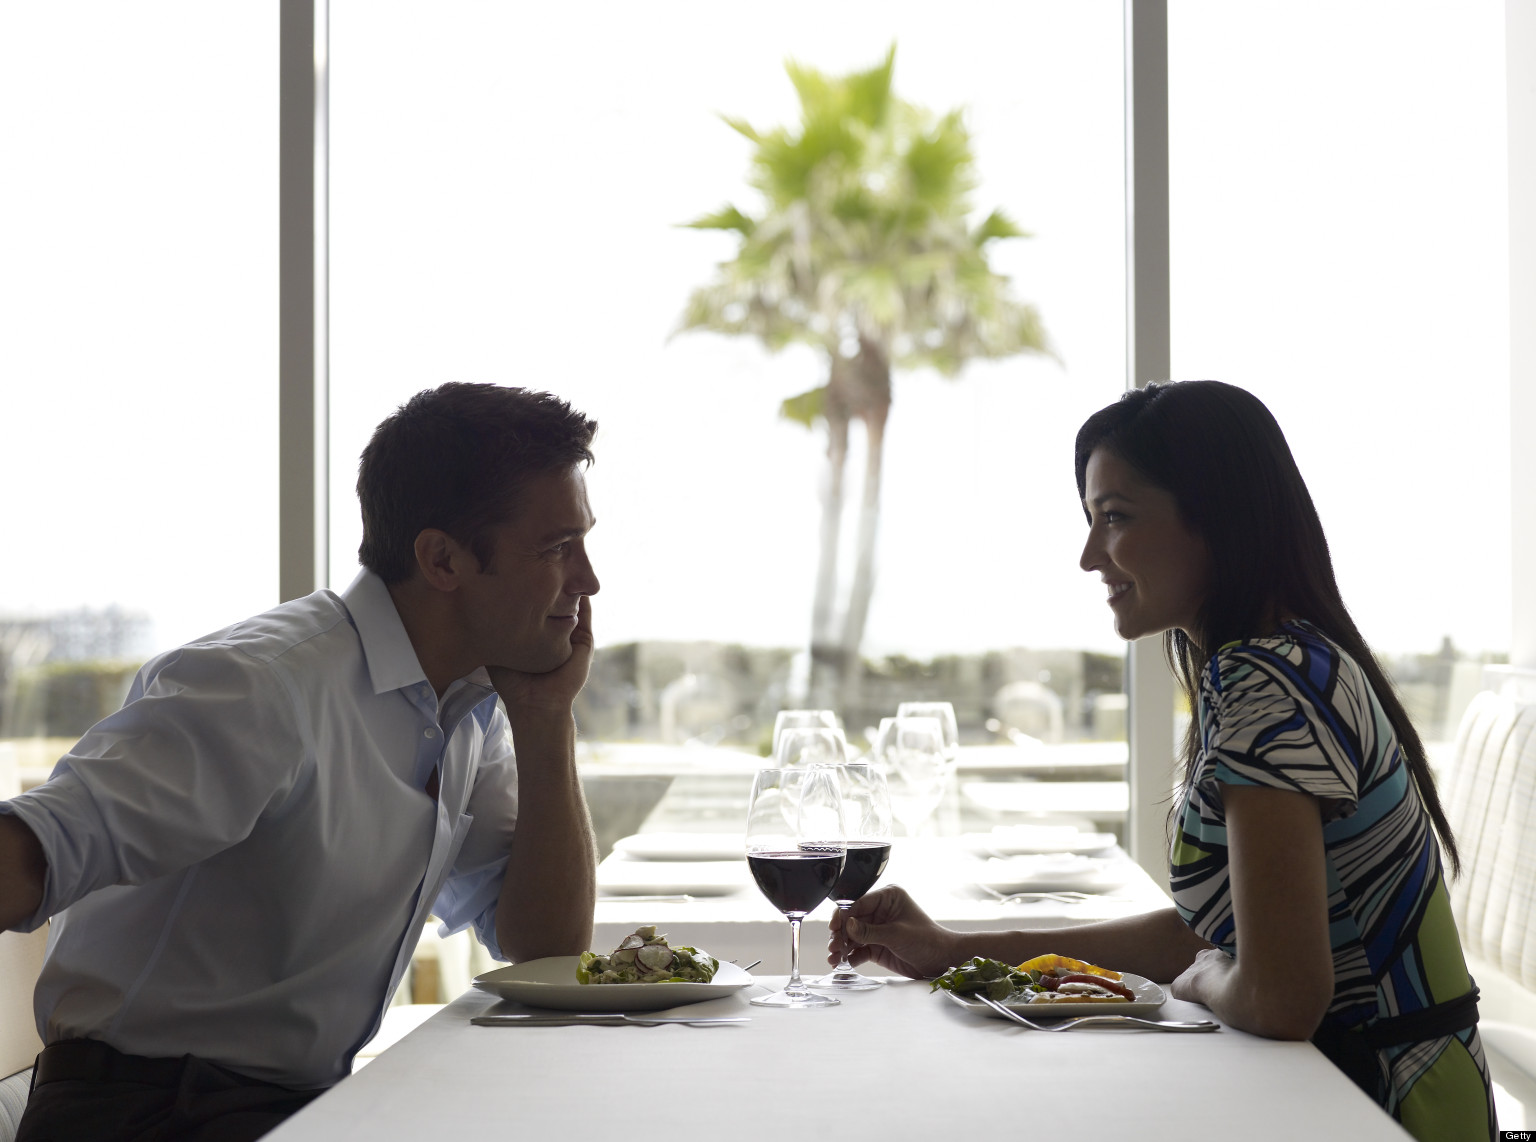 ross divorced singles personals Free divorce dating divorce may be harsh, but cupidcom is there for you to forget about everything get in touch with people who were in the same place and find your own remedy in your soulmate.